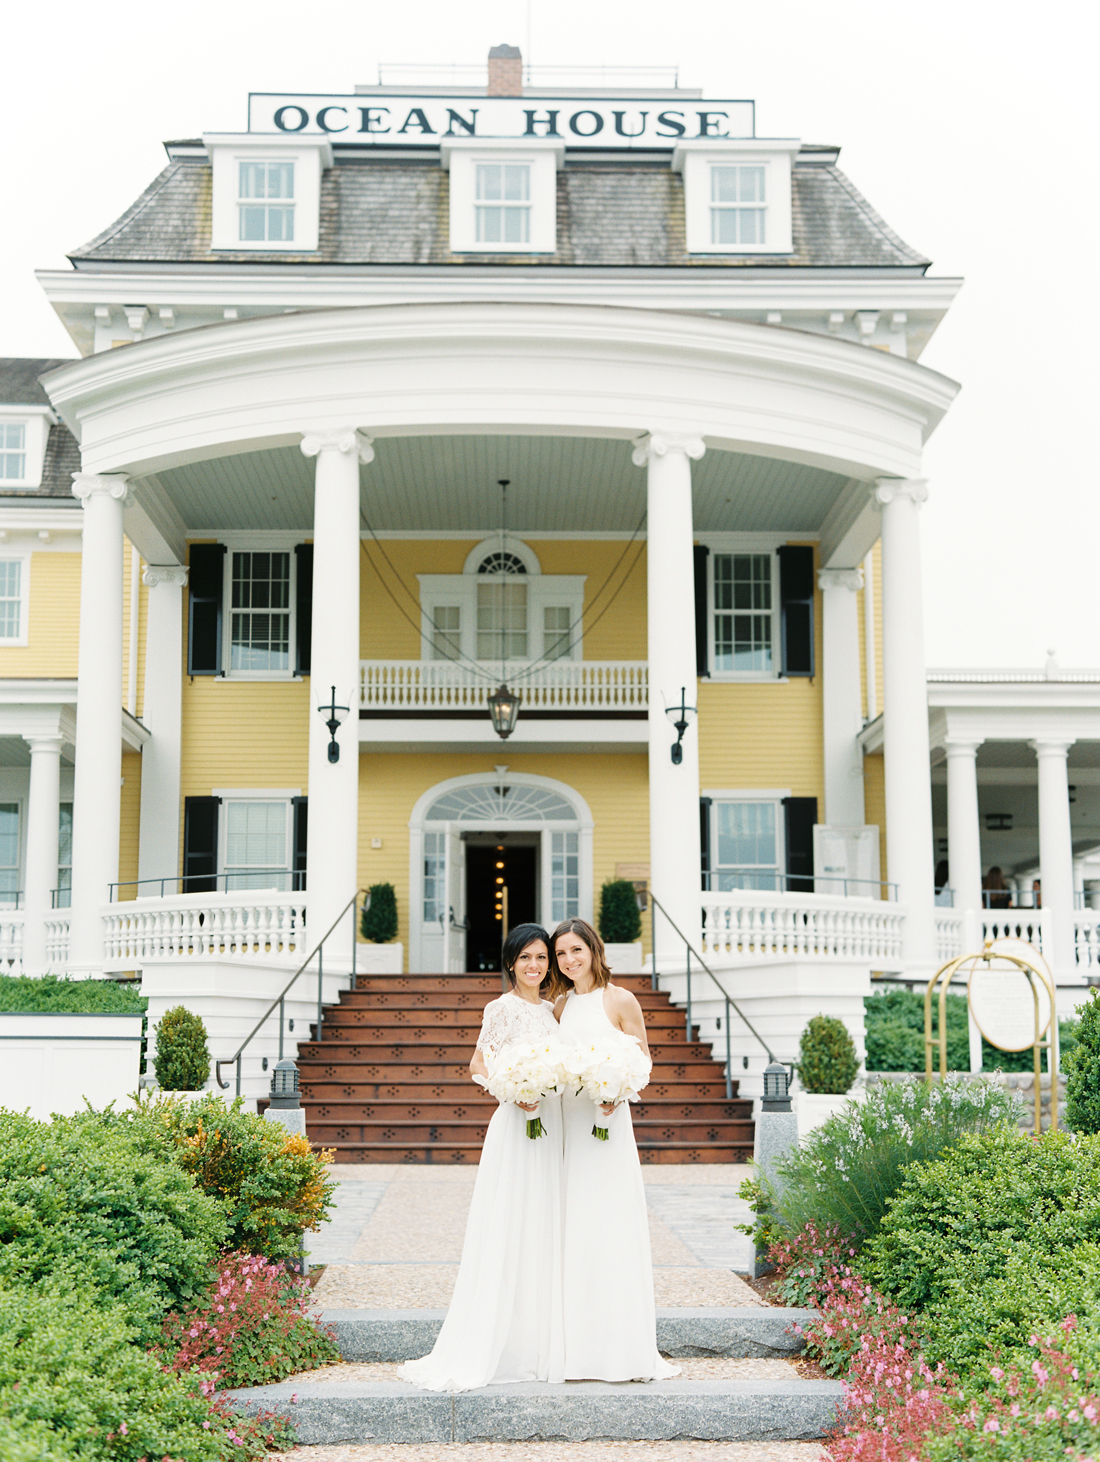 brides stand outside pale yellow ocean house with white pillars